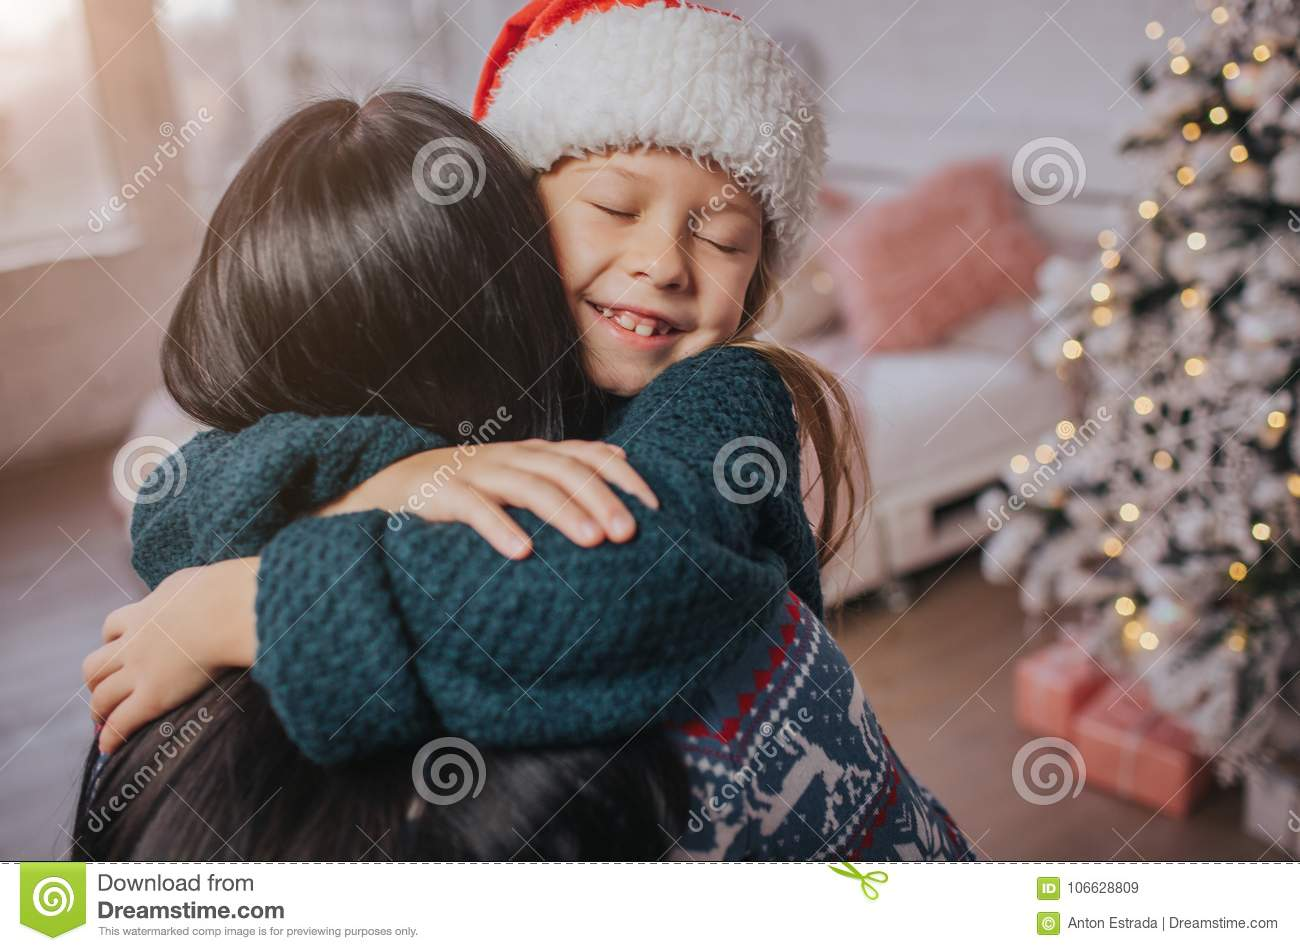 Download Merry Christmas And Happy Holidays Cheerful Mom Her Cute Daughter Girl Exchanging Gifts